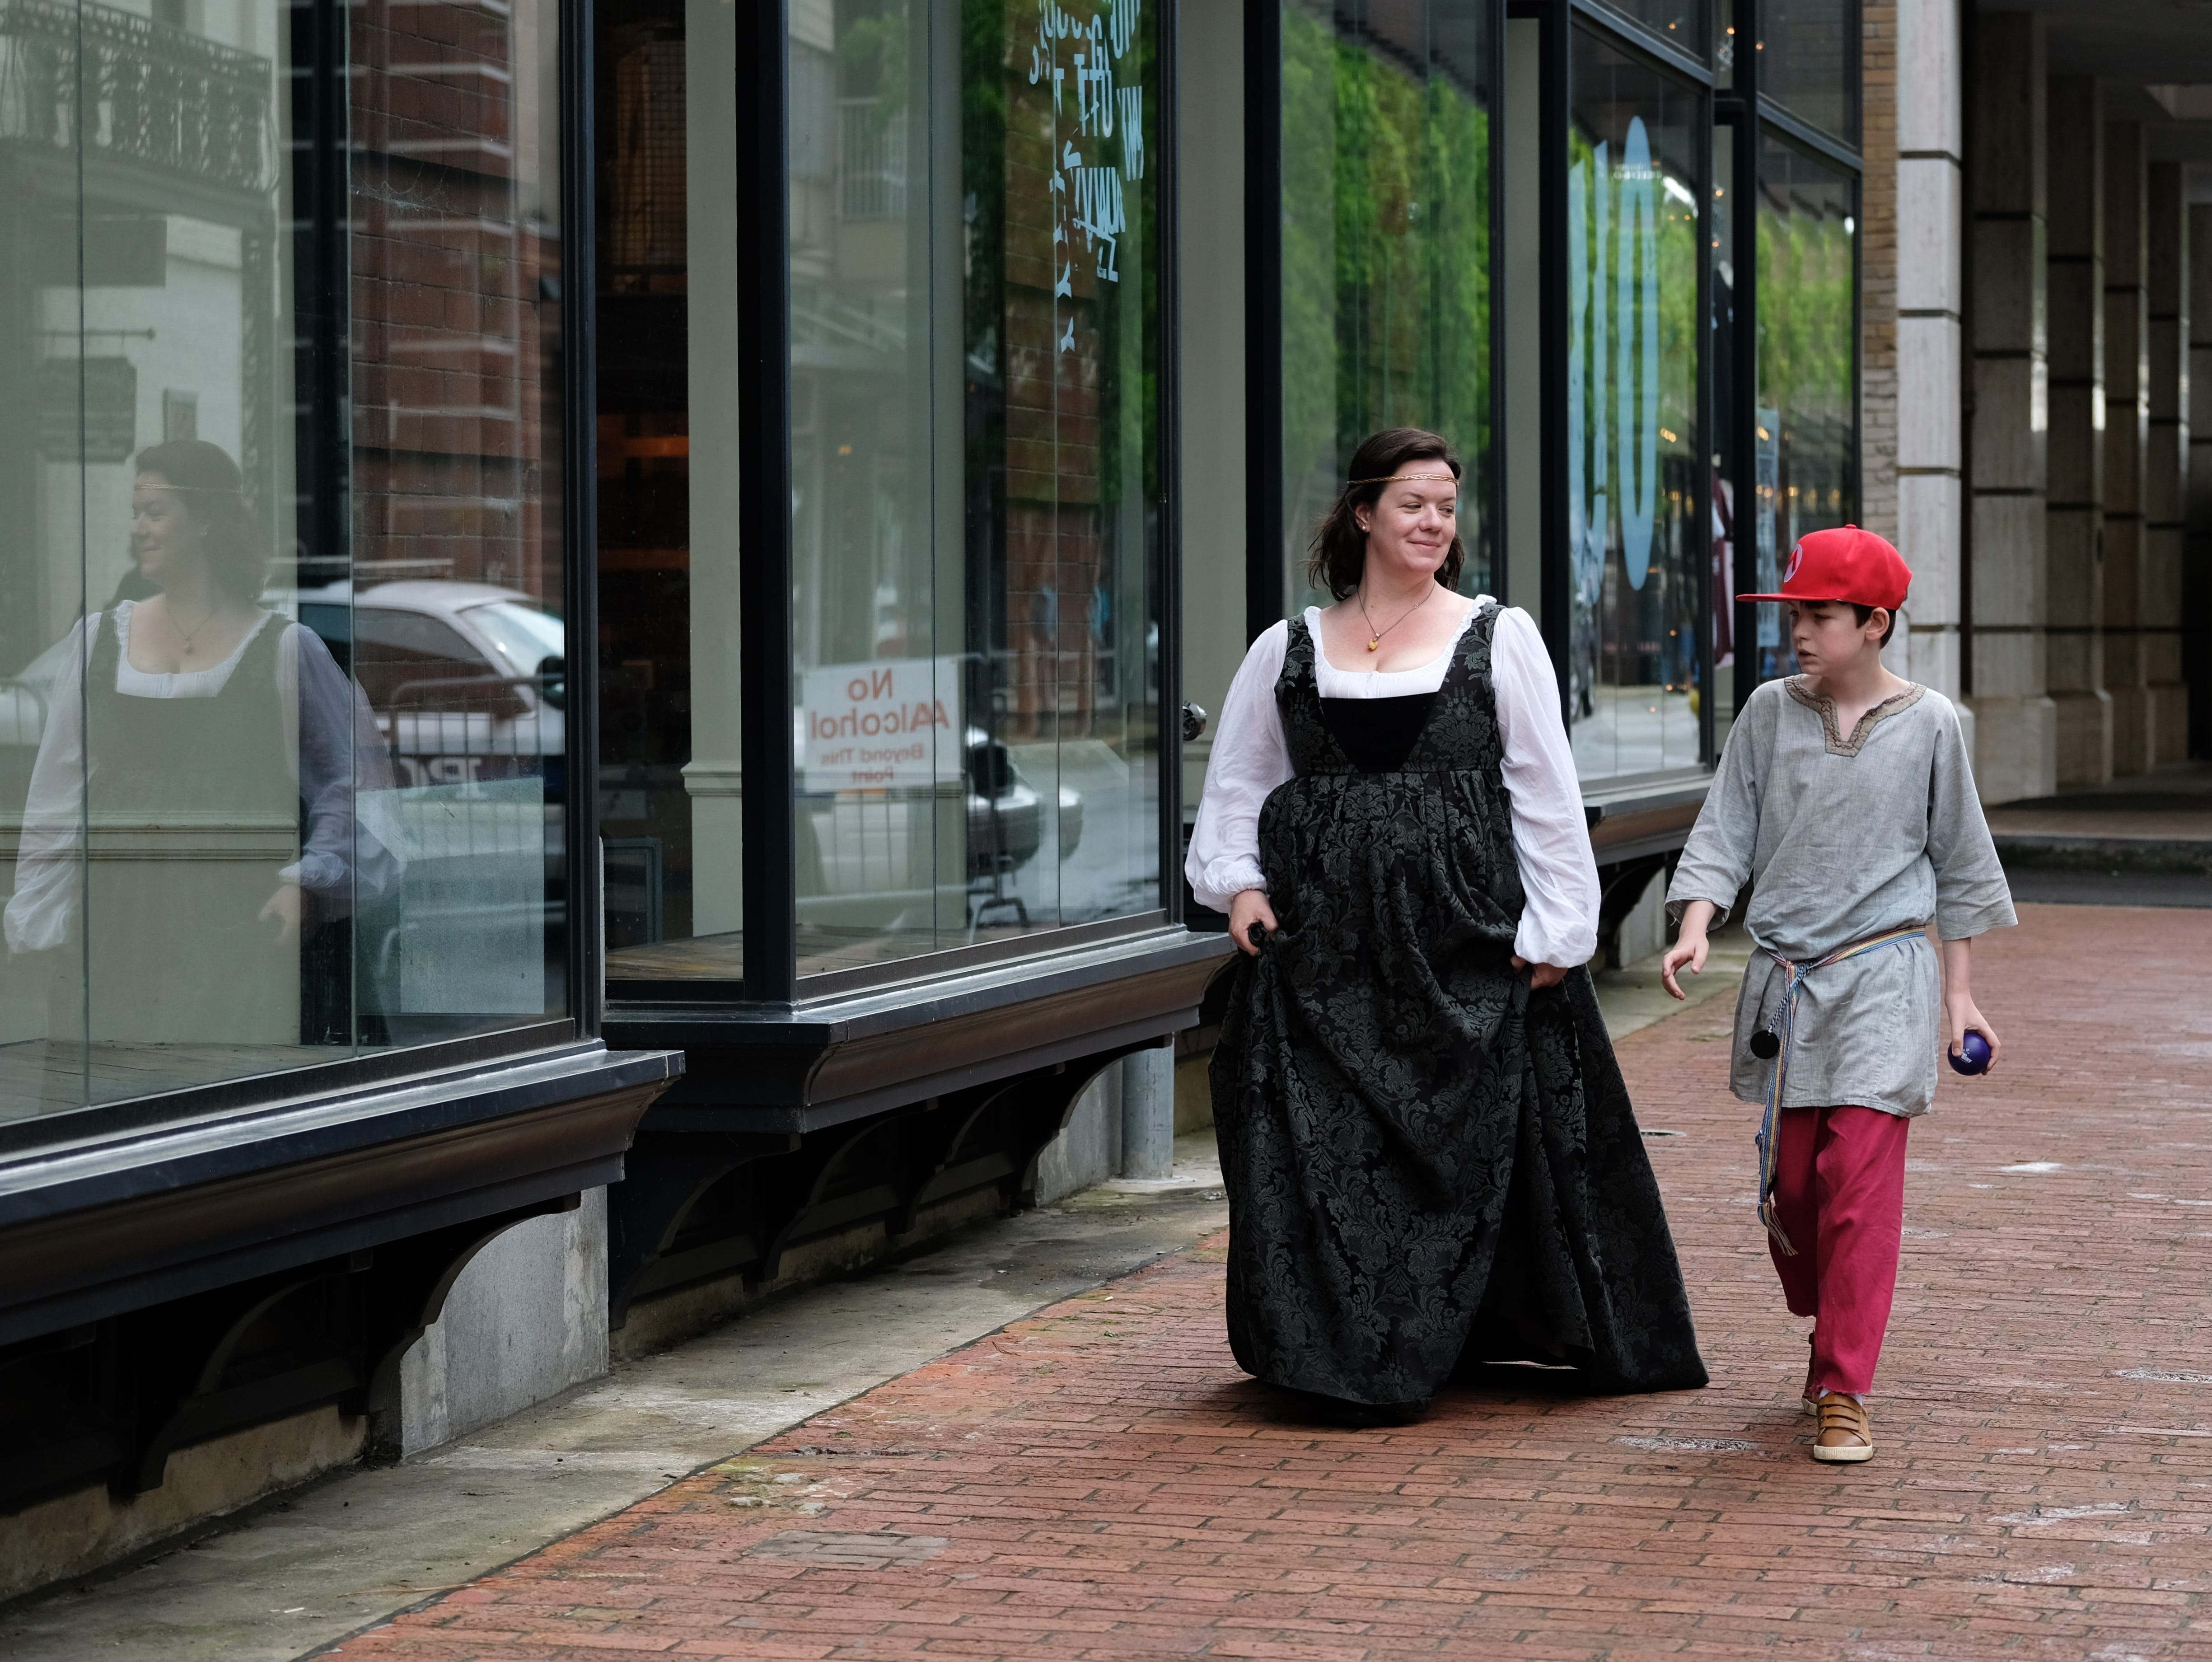 Shannon Bryant and Daniel Carey, 11, make their way to the Rossini Festival in Knoxville on Saturday, April 13, 2019. (Shawn Millsaps/Special to News Sentinel)